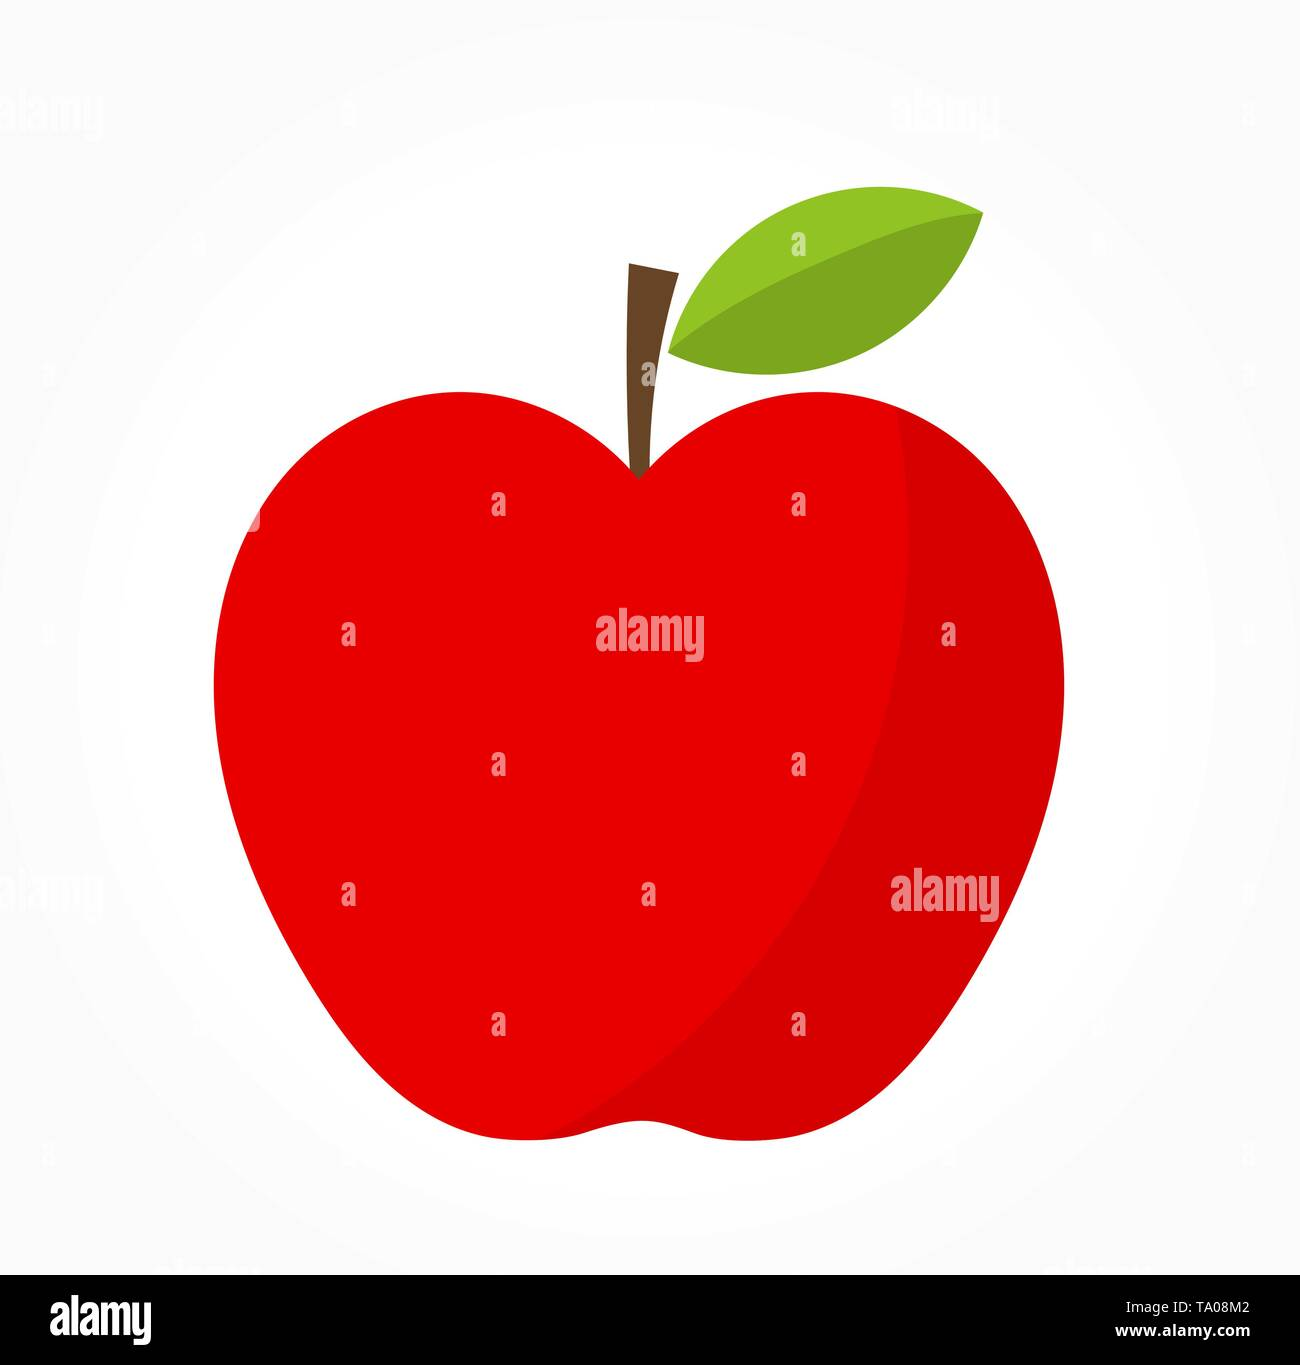 Red apple. Vector illustration - Stock Image